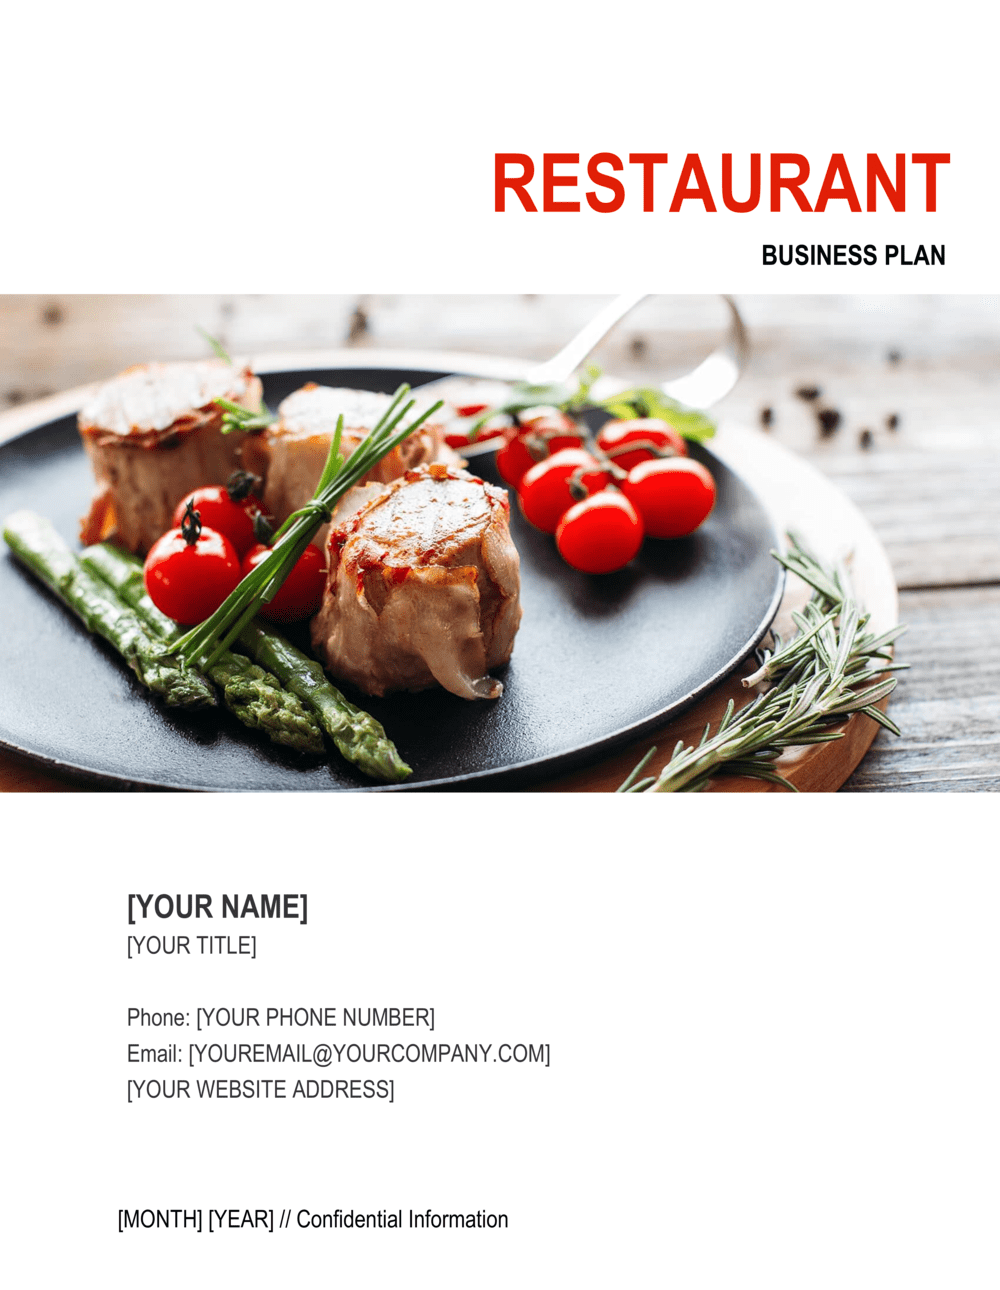 Business-in-a-Box's Restaurant Business Plan 2 Template